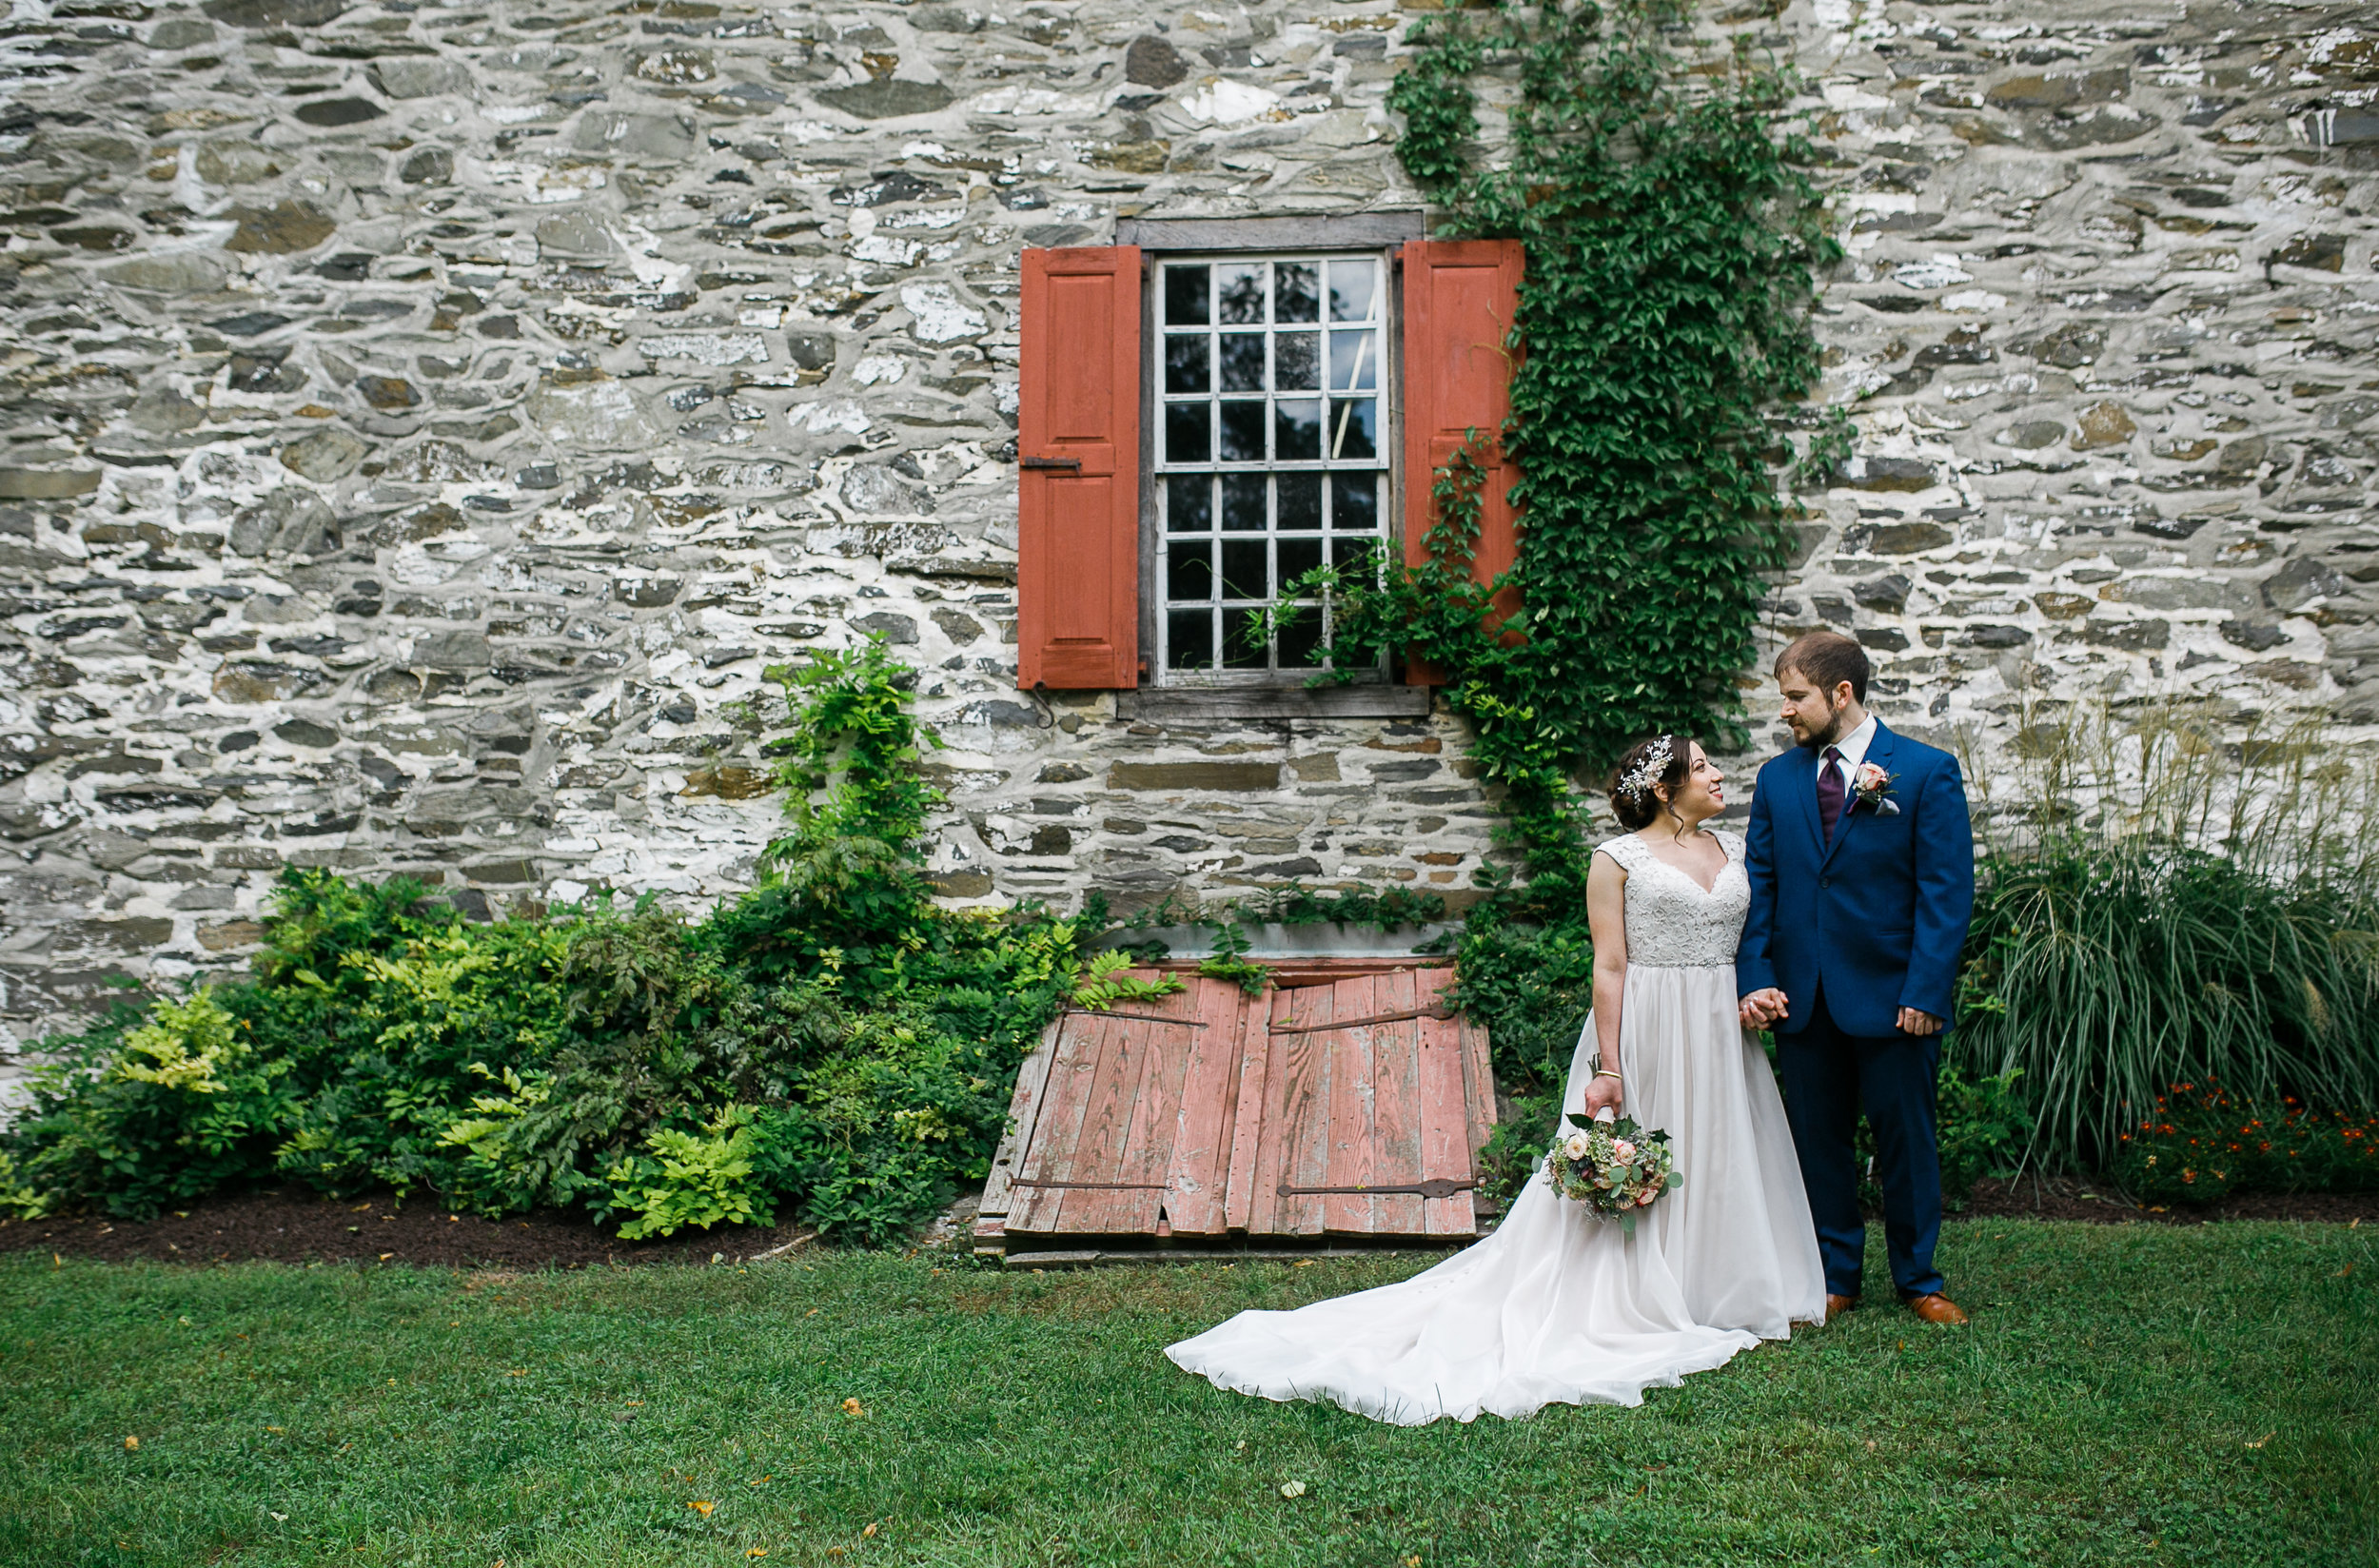 Mt Gulian Beacon New York Wedding